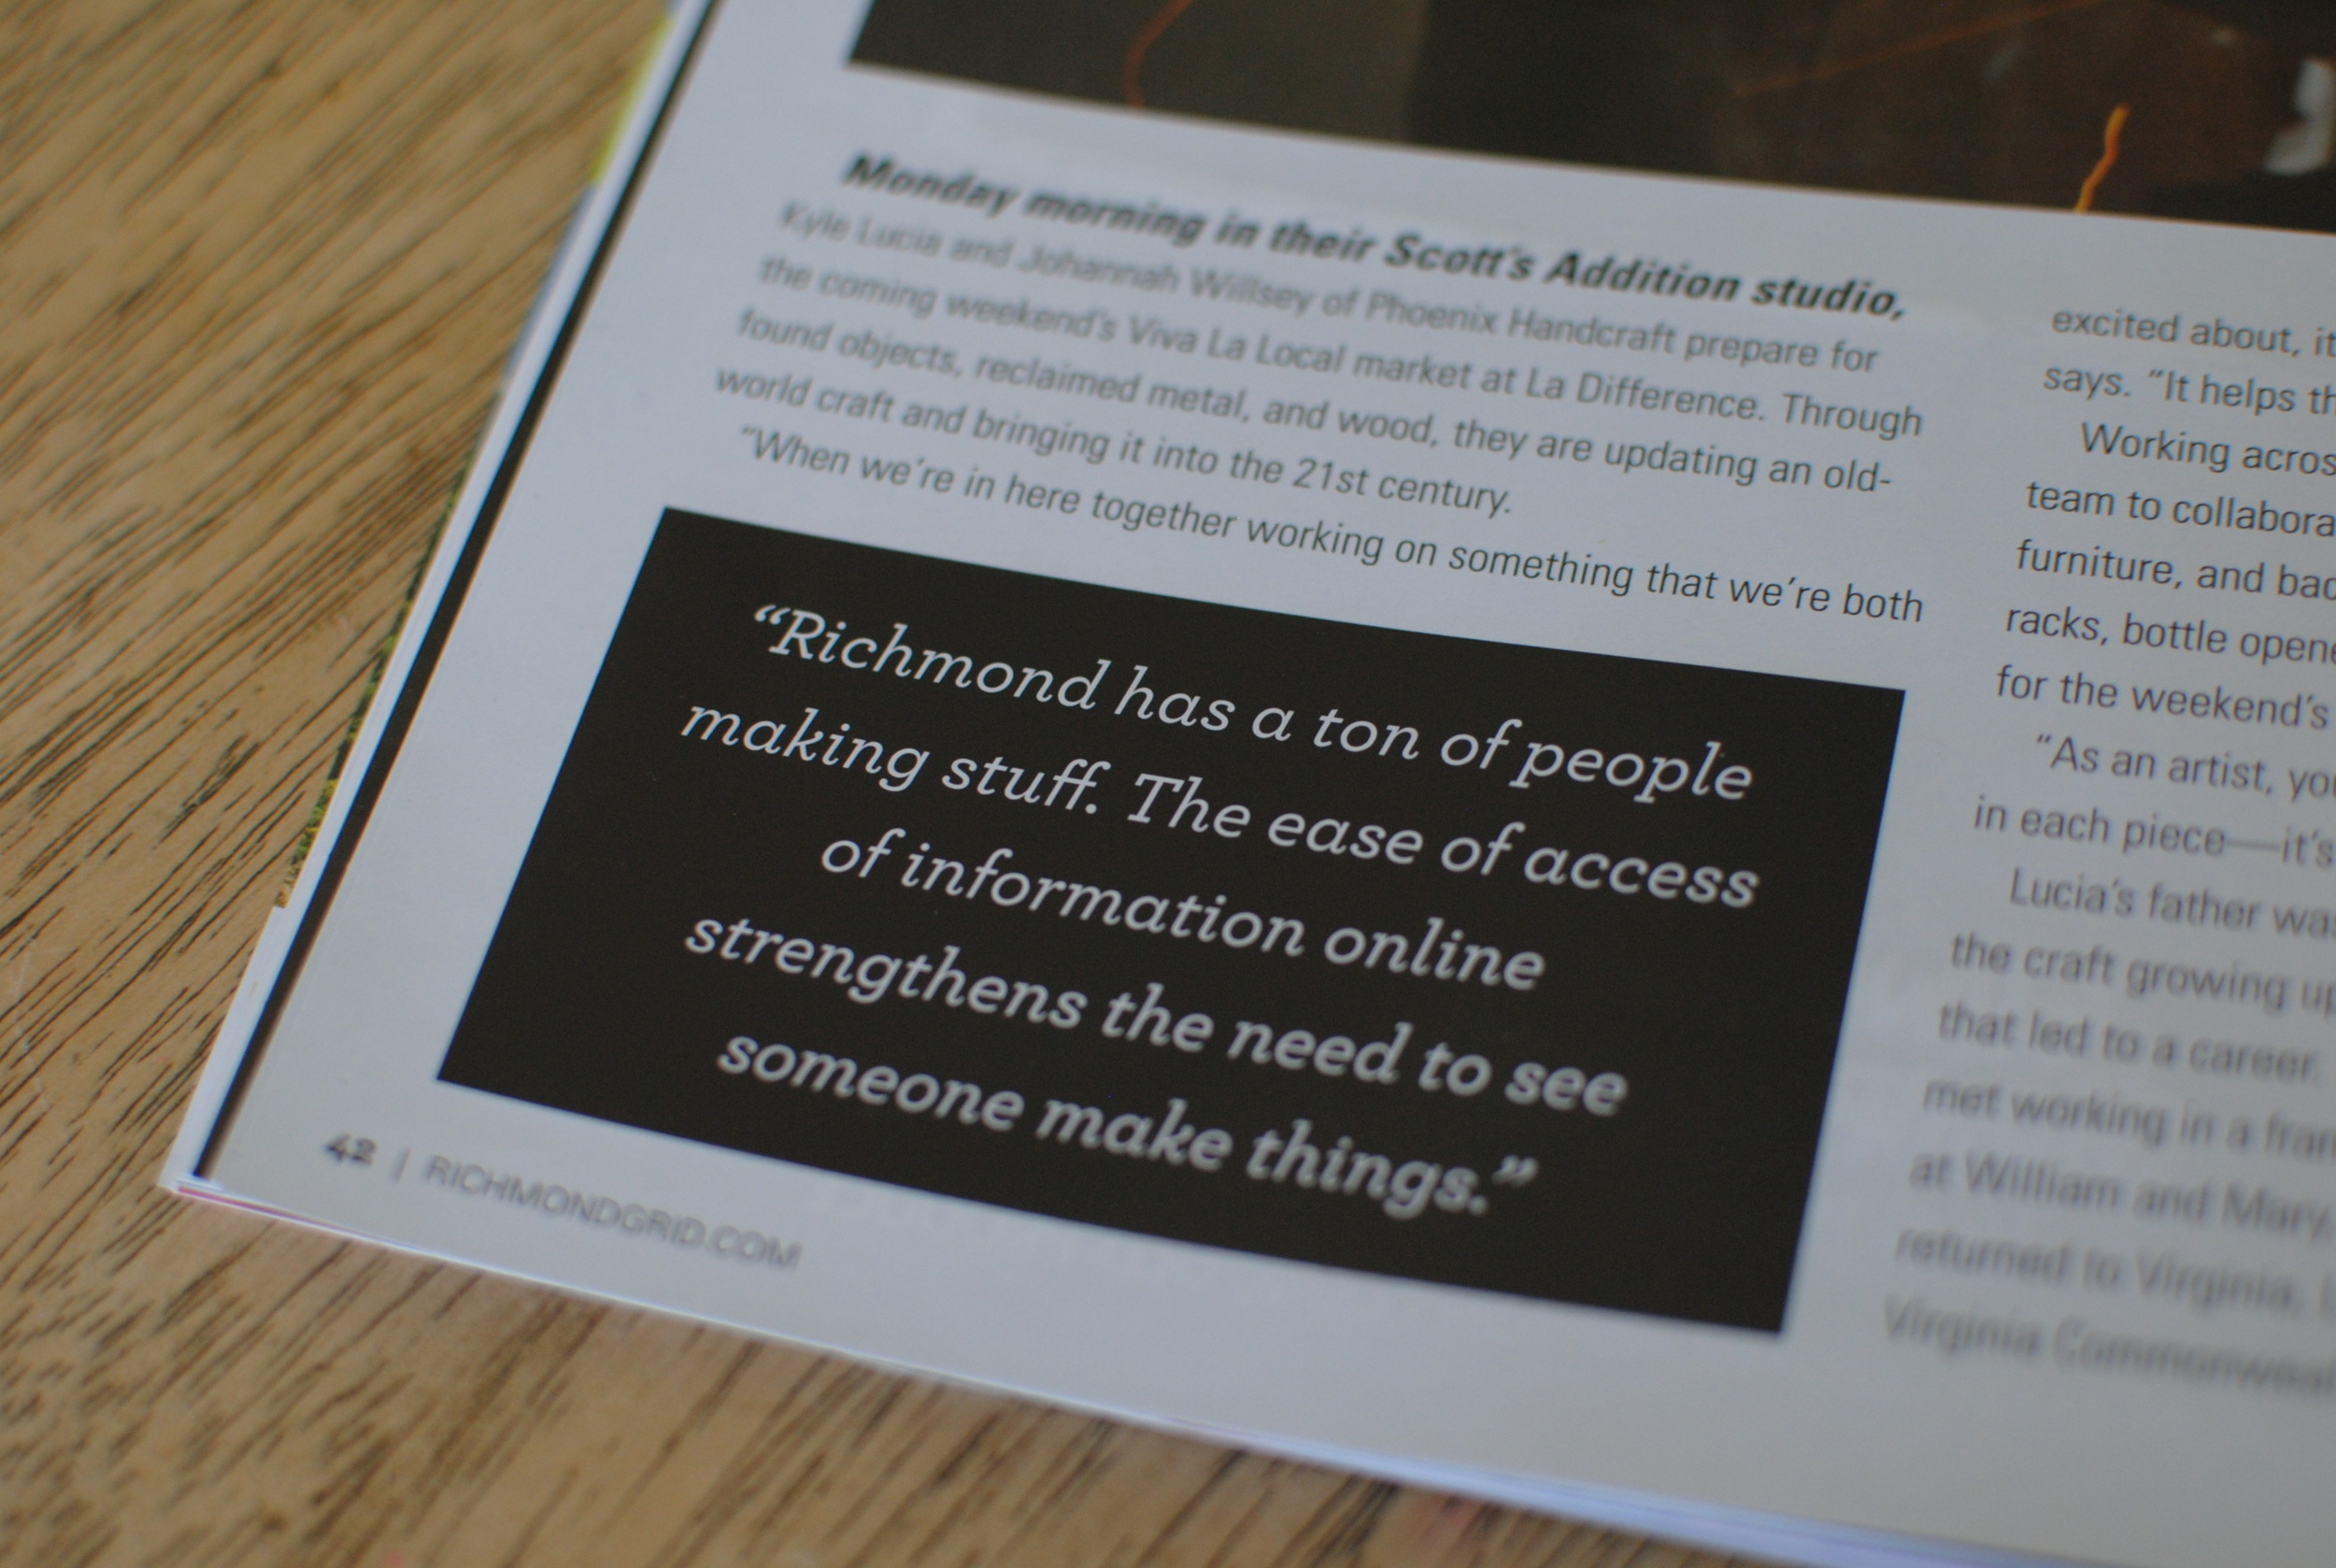 We even got a pull out quote in the article! Add that to the Phoenix Handcraft baby book of firsts.